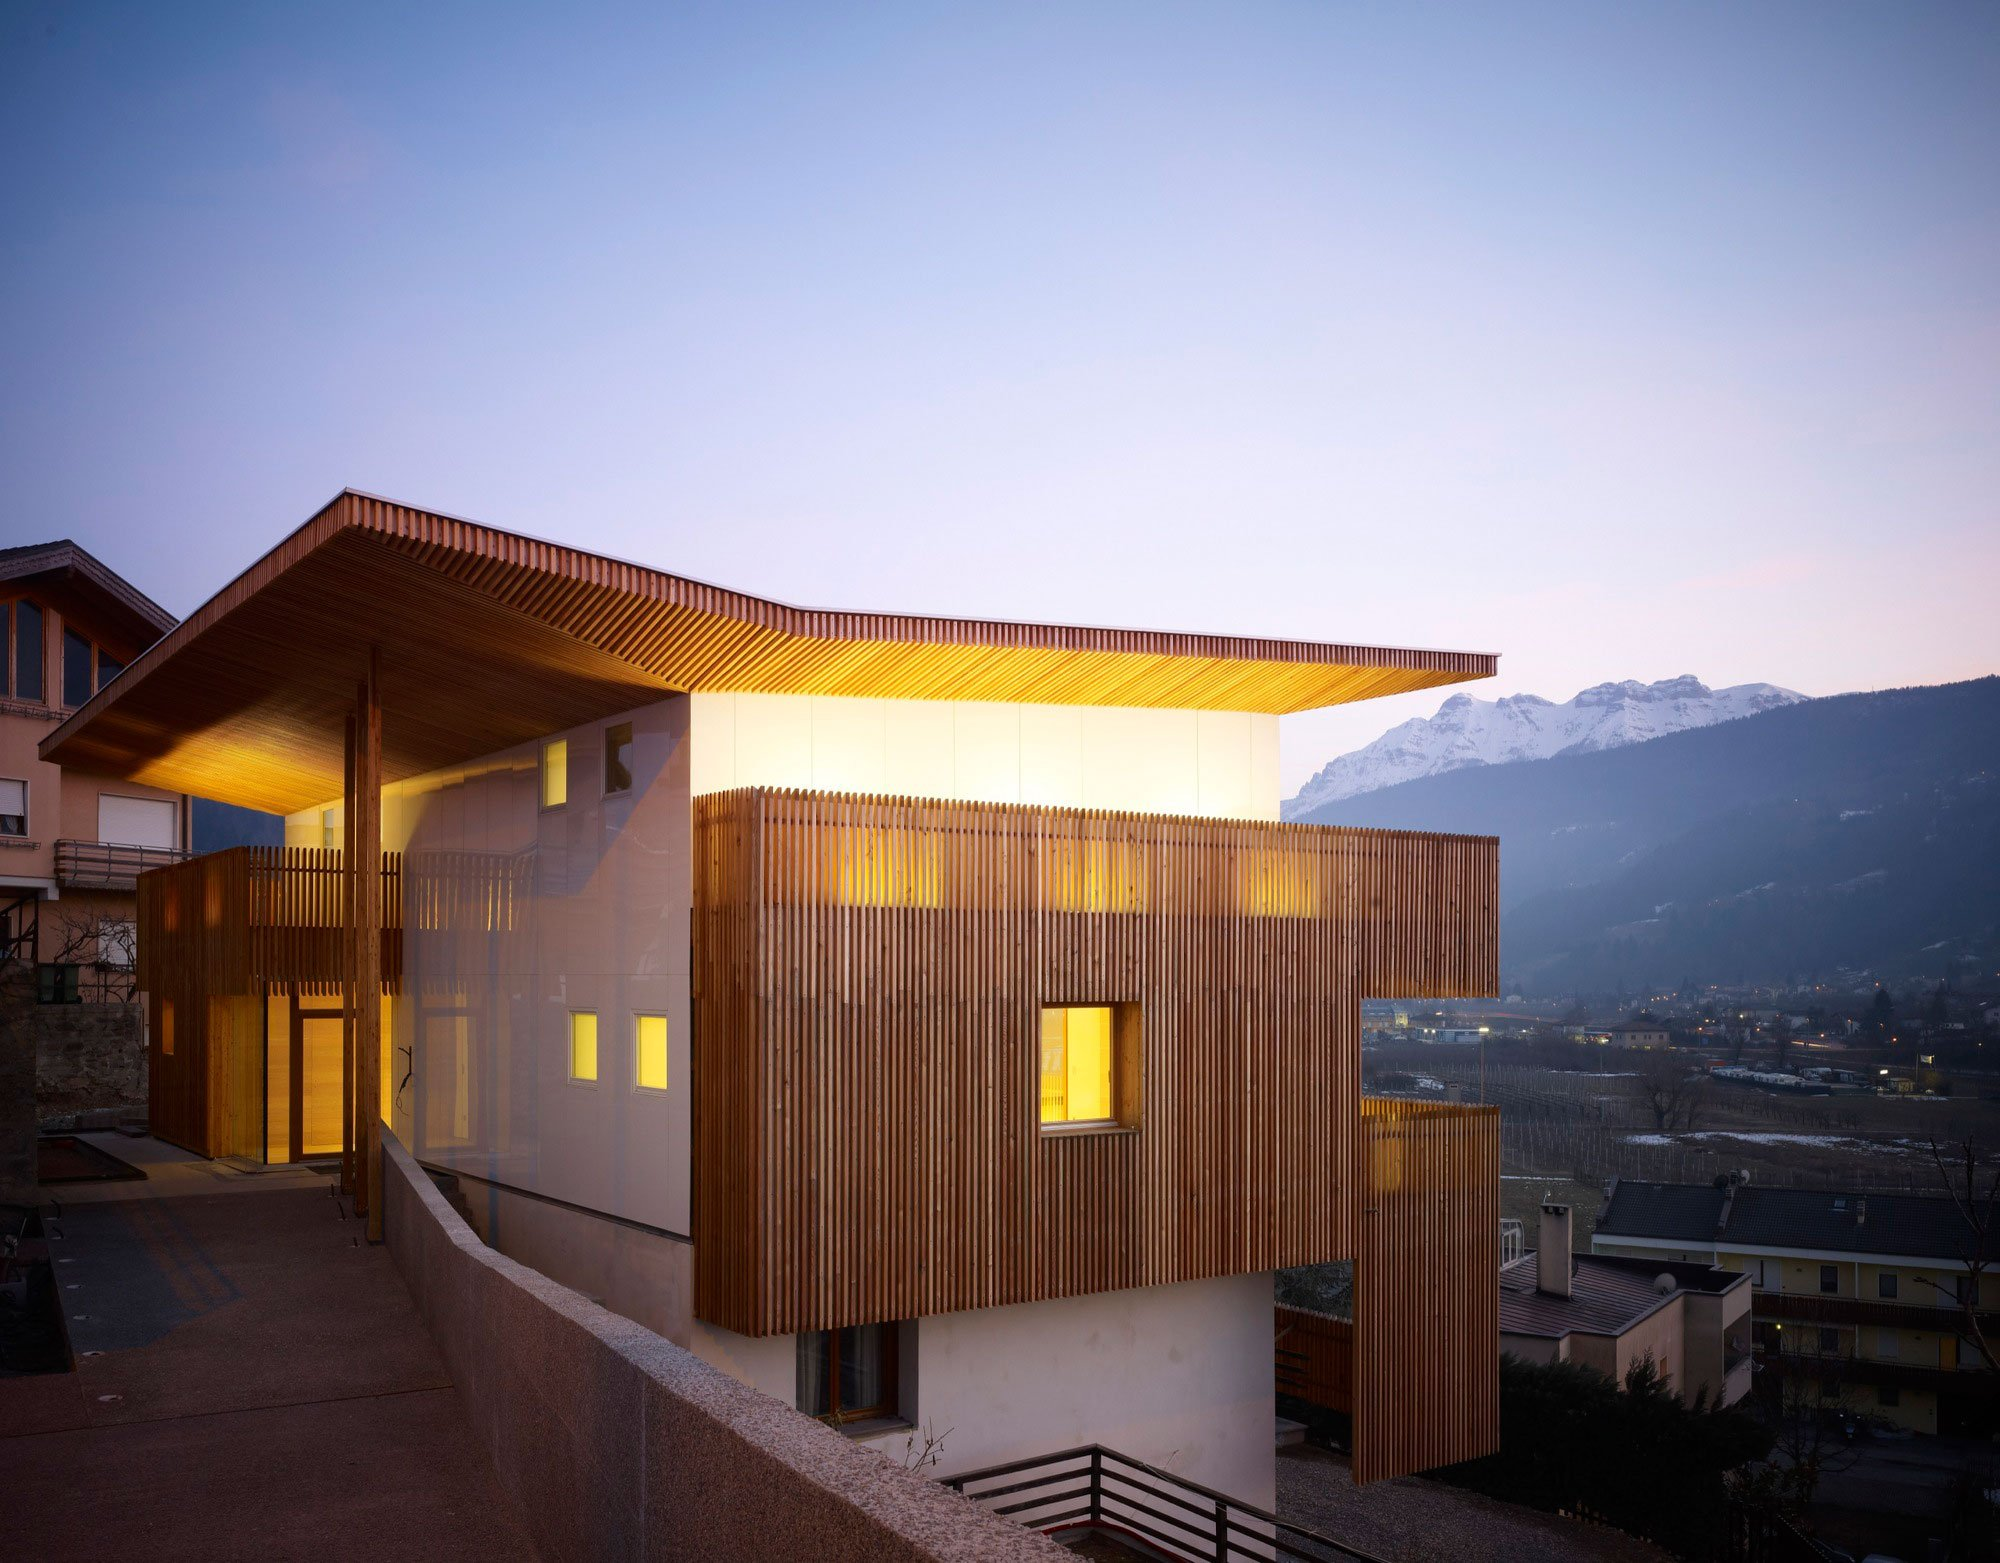 PF Single Family House By Burnazzi Feltrin Architects CAANdesign - Single family home designs